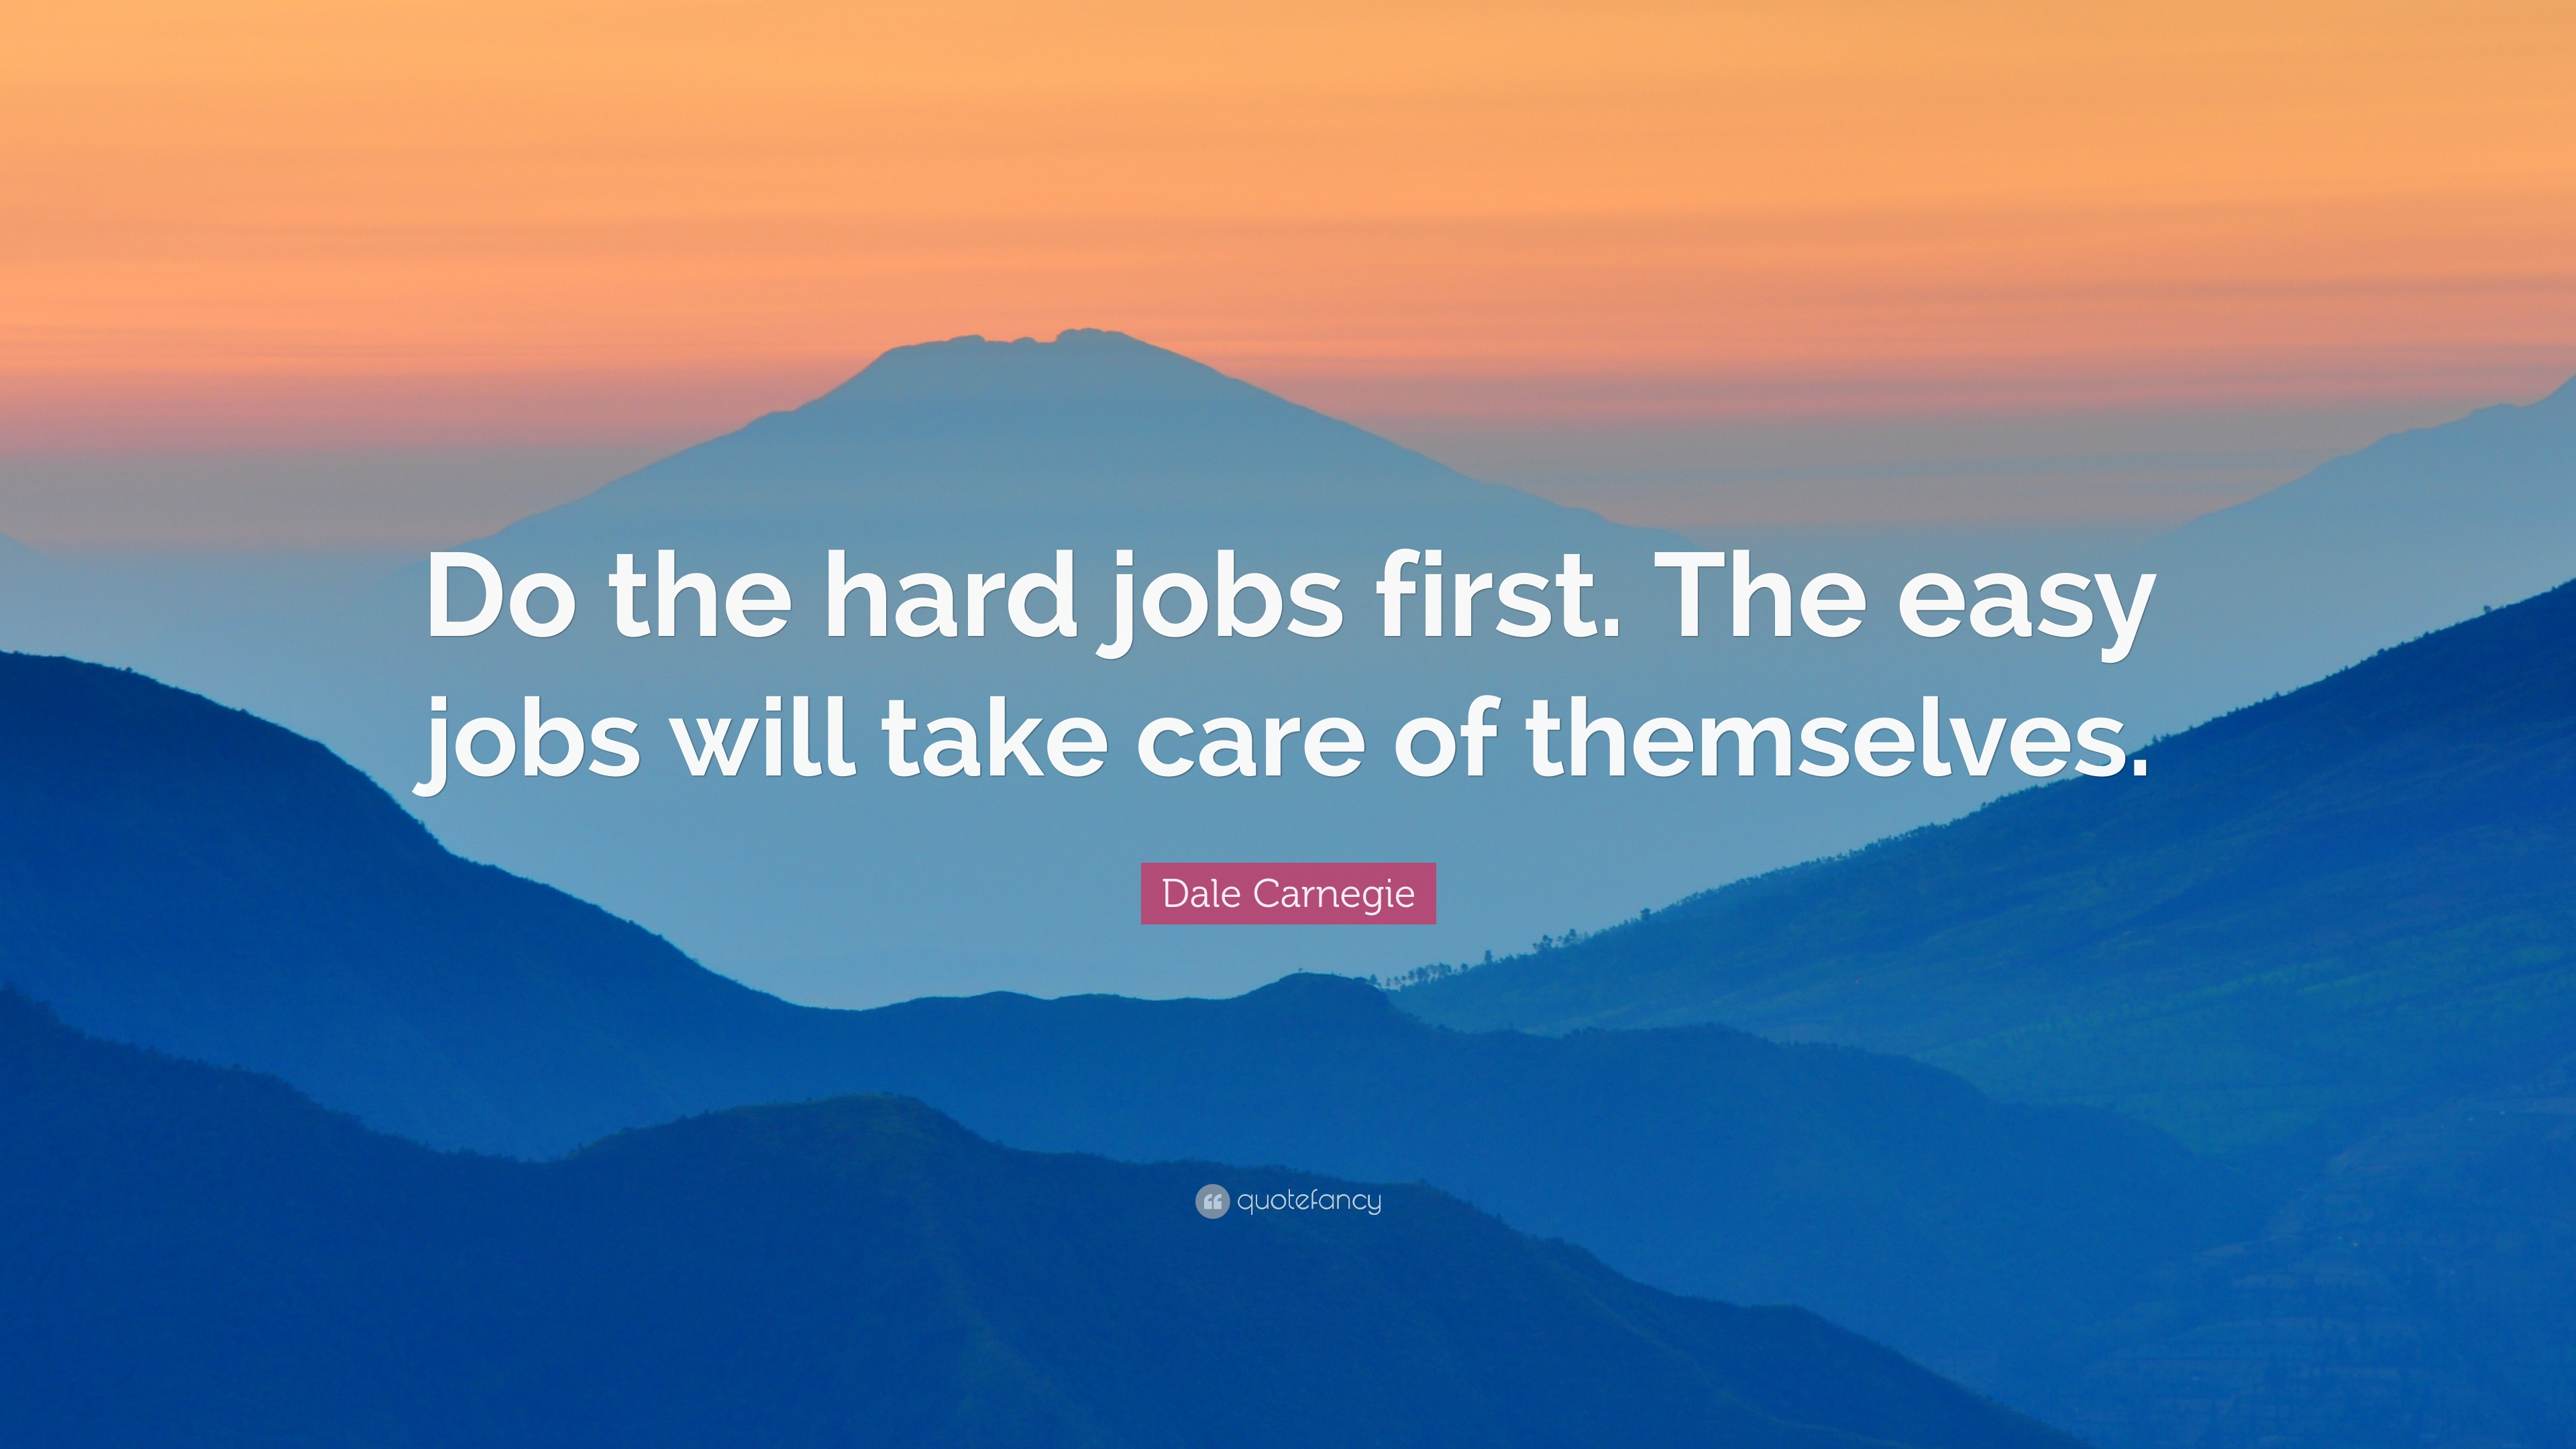 dale carnegie quote do the hard jobs first the easy jobs will dale carnegie quote do the hard jobs first the easy jobs will take